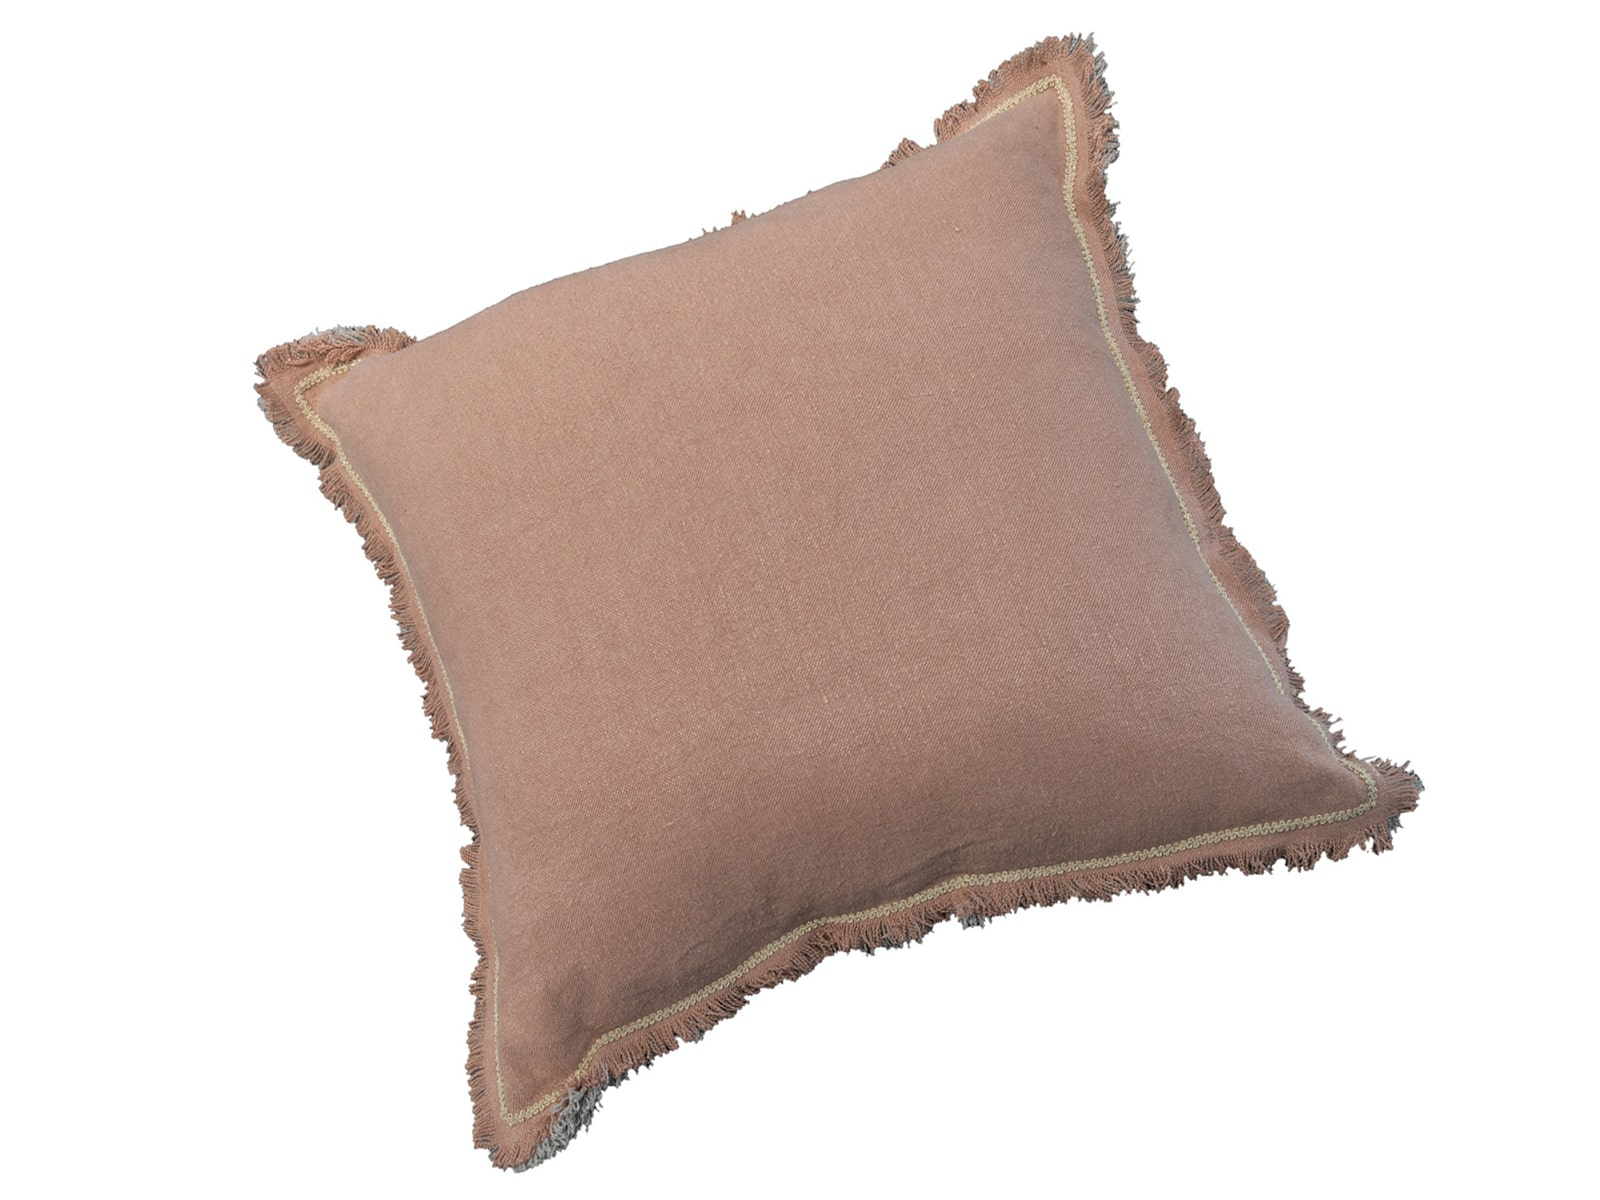 Deco Cushion Blossom Dune 45x45 1